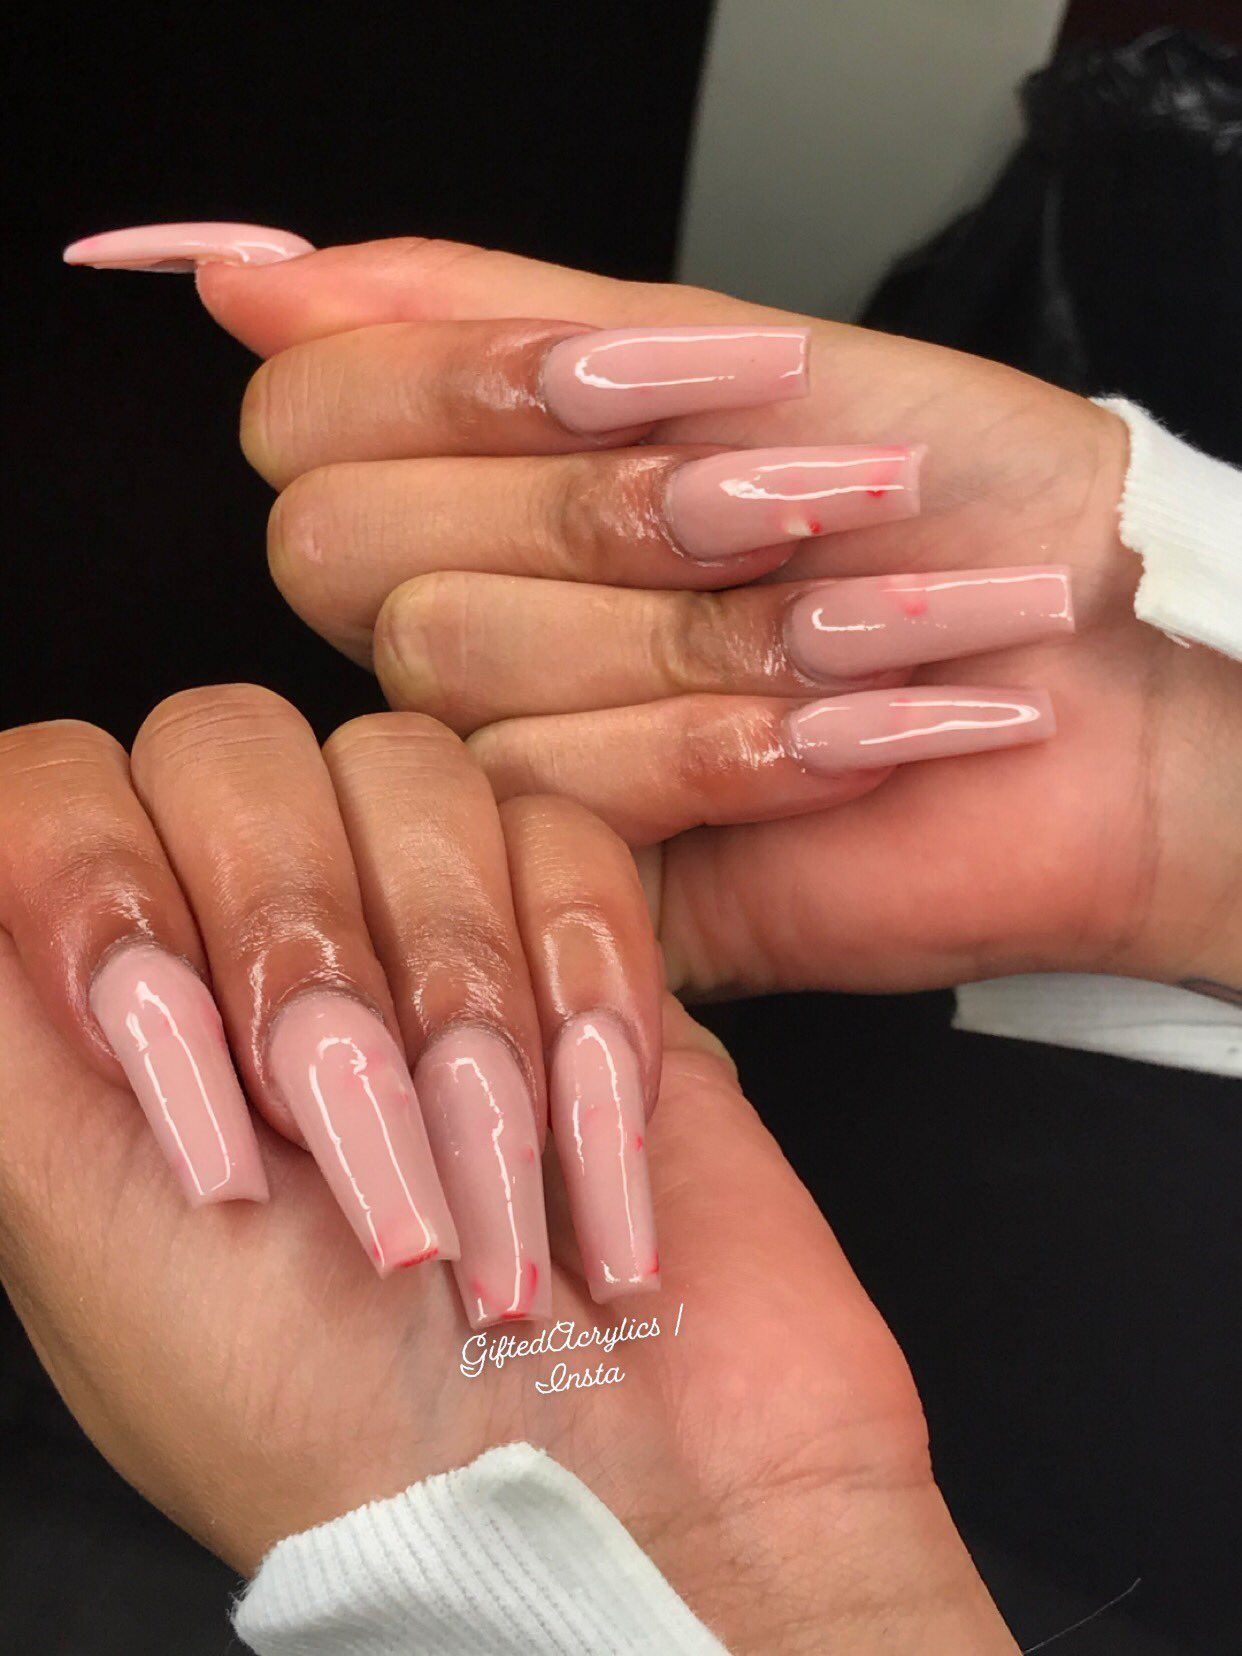 A From Around The Way On Twitter In 2020 Best Acrylic Nails Cute Acrylic Nails Nails